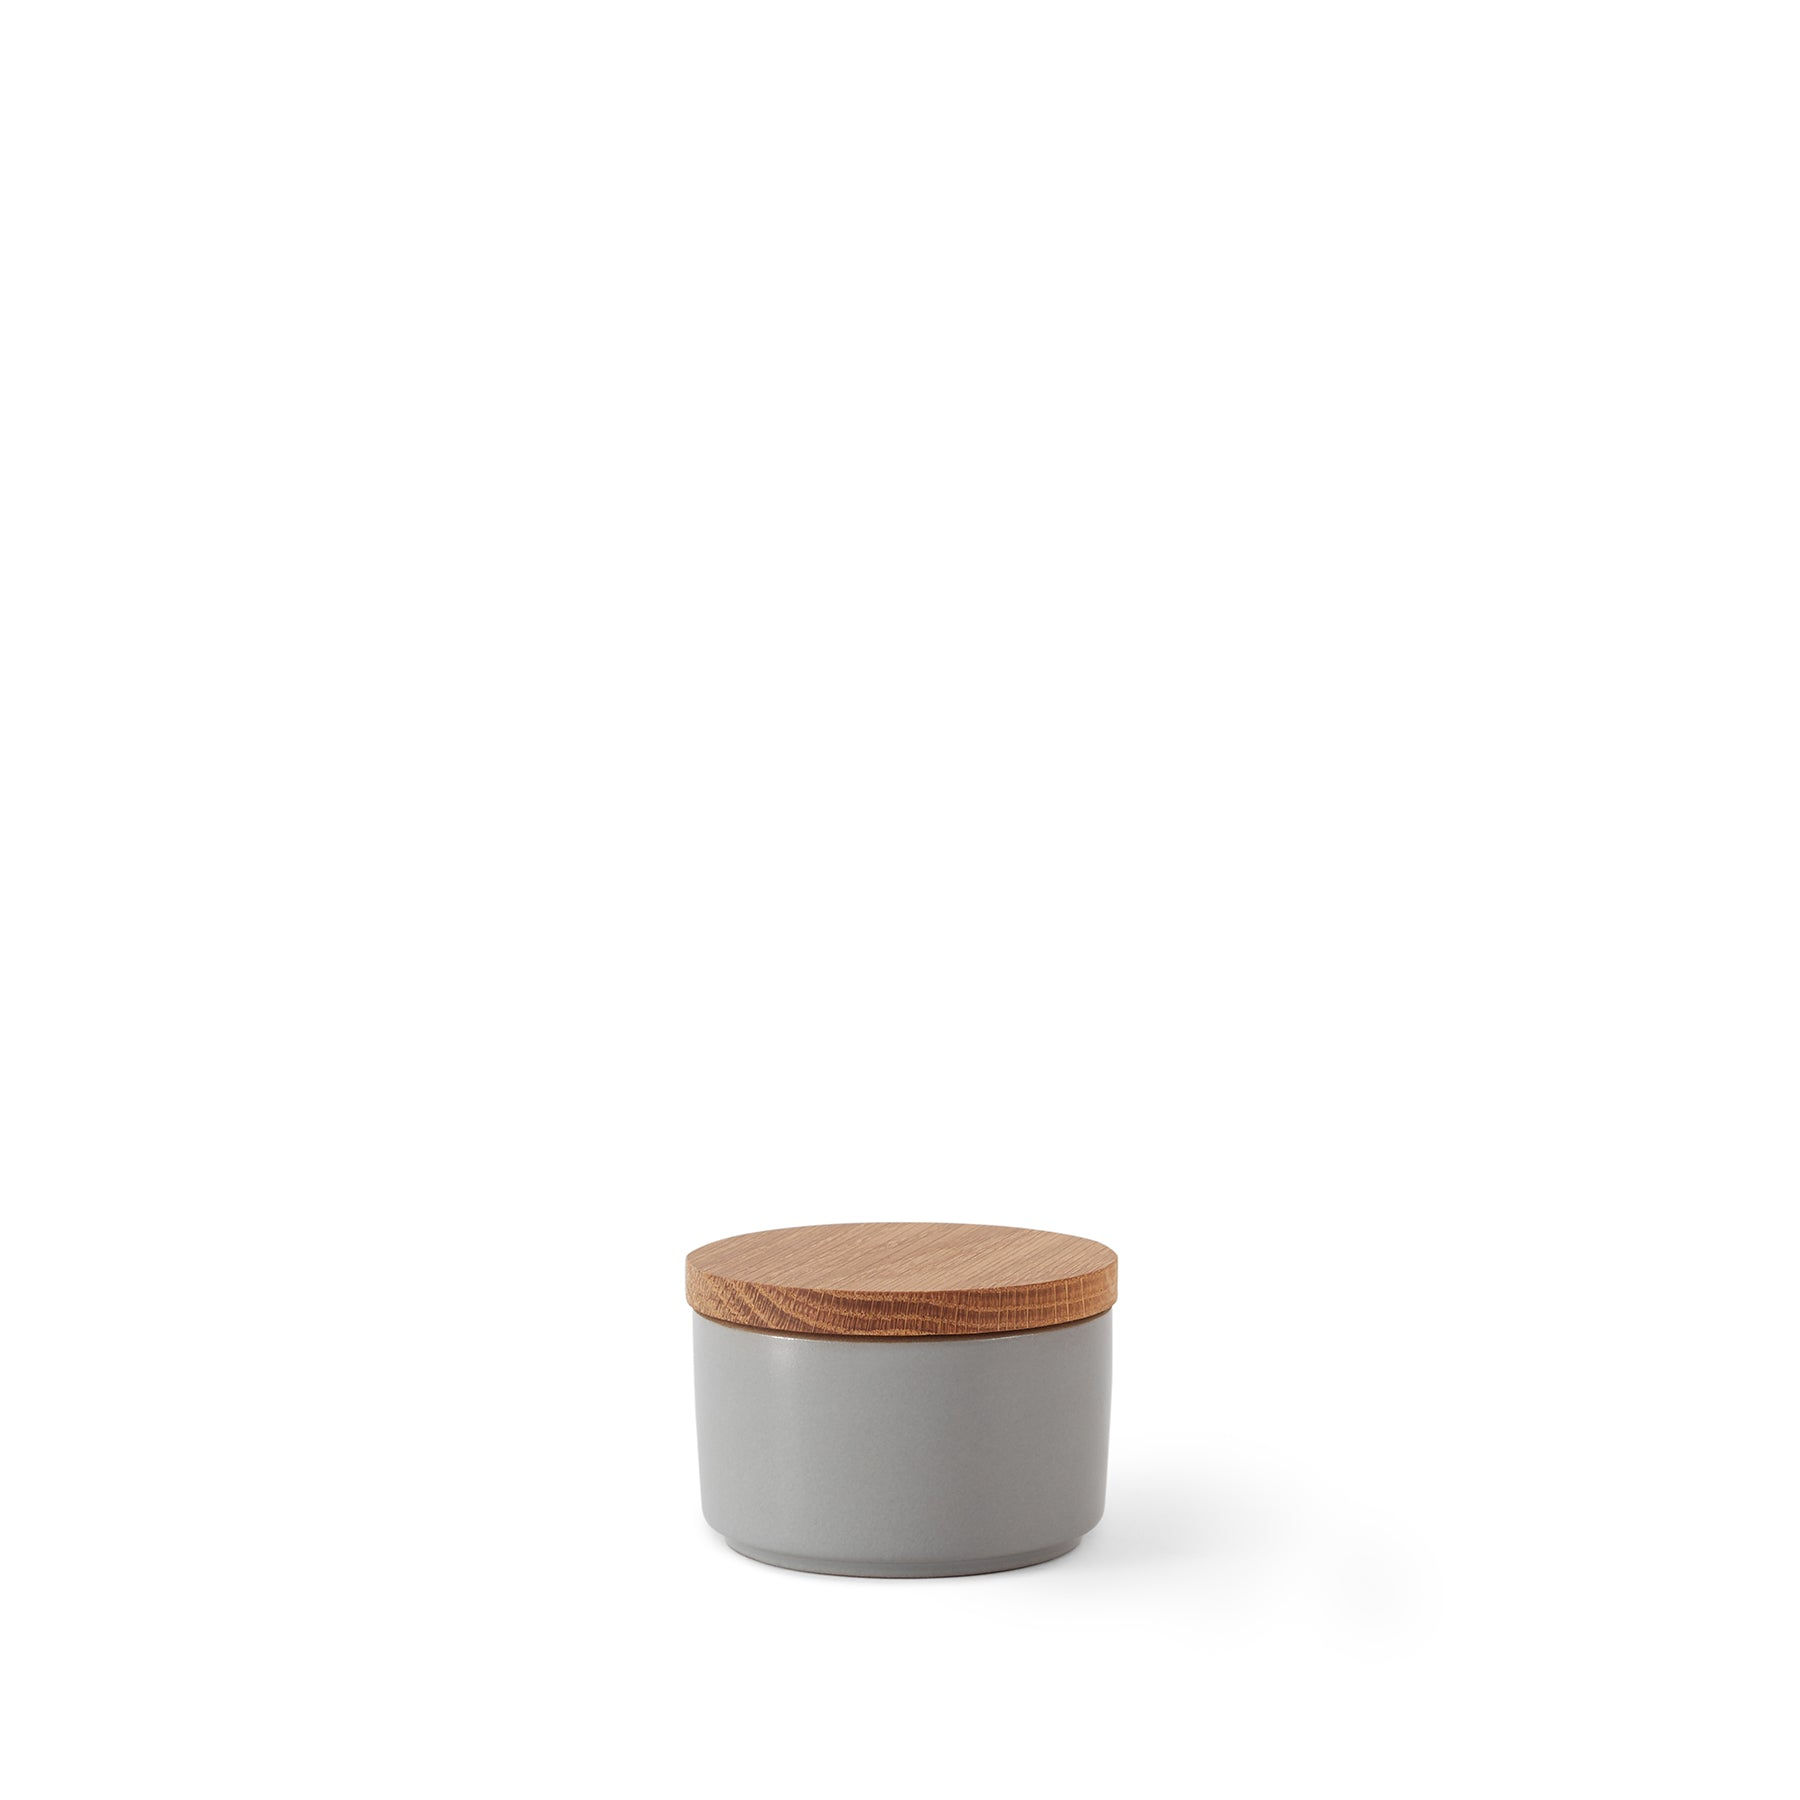 Mini Container with Wood Lid in Lemongrass and Light Grey Whale Zoom Image 1